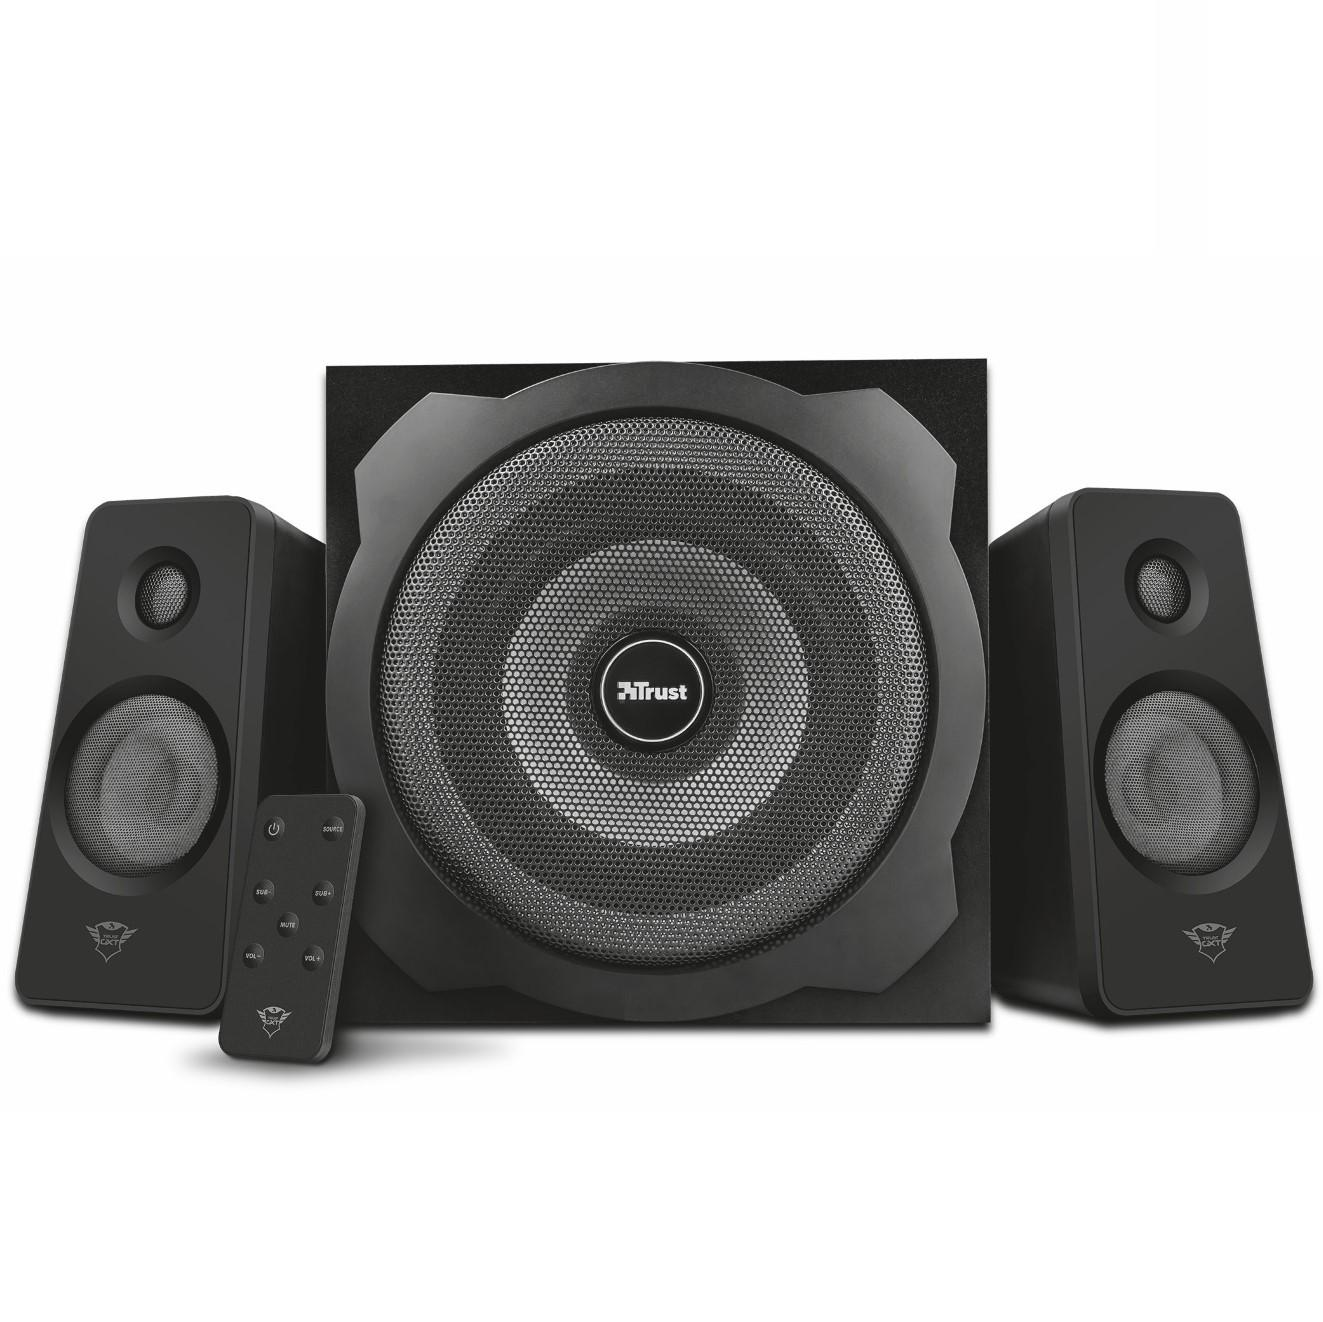 Trust GXT 638 2.1 Digital Gaming Speaker System with